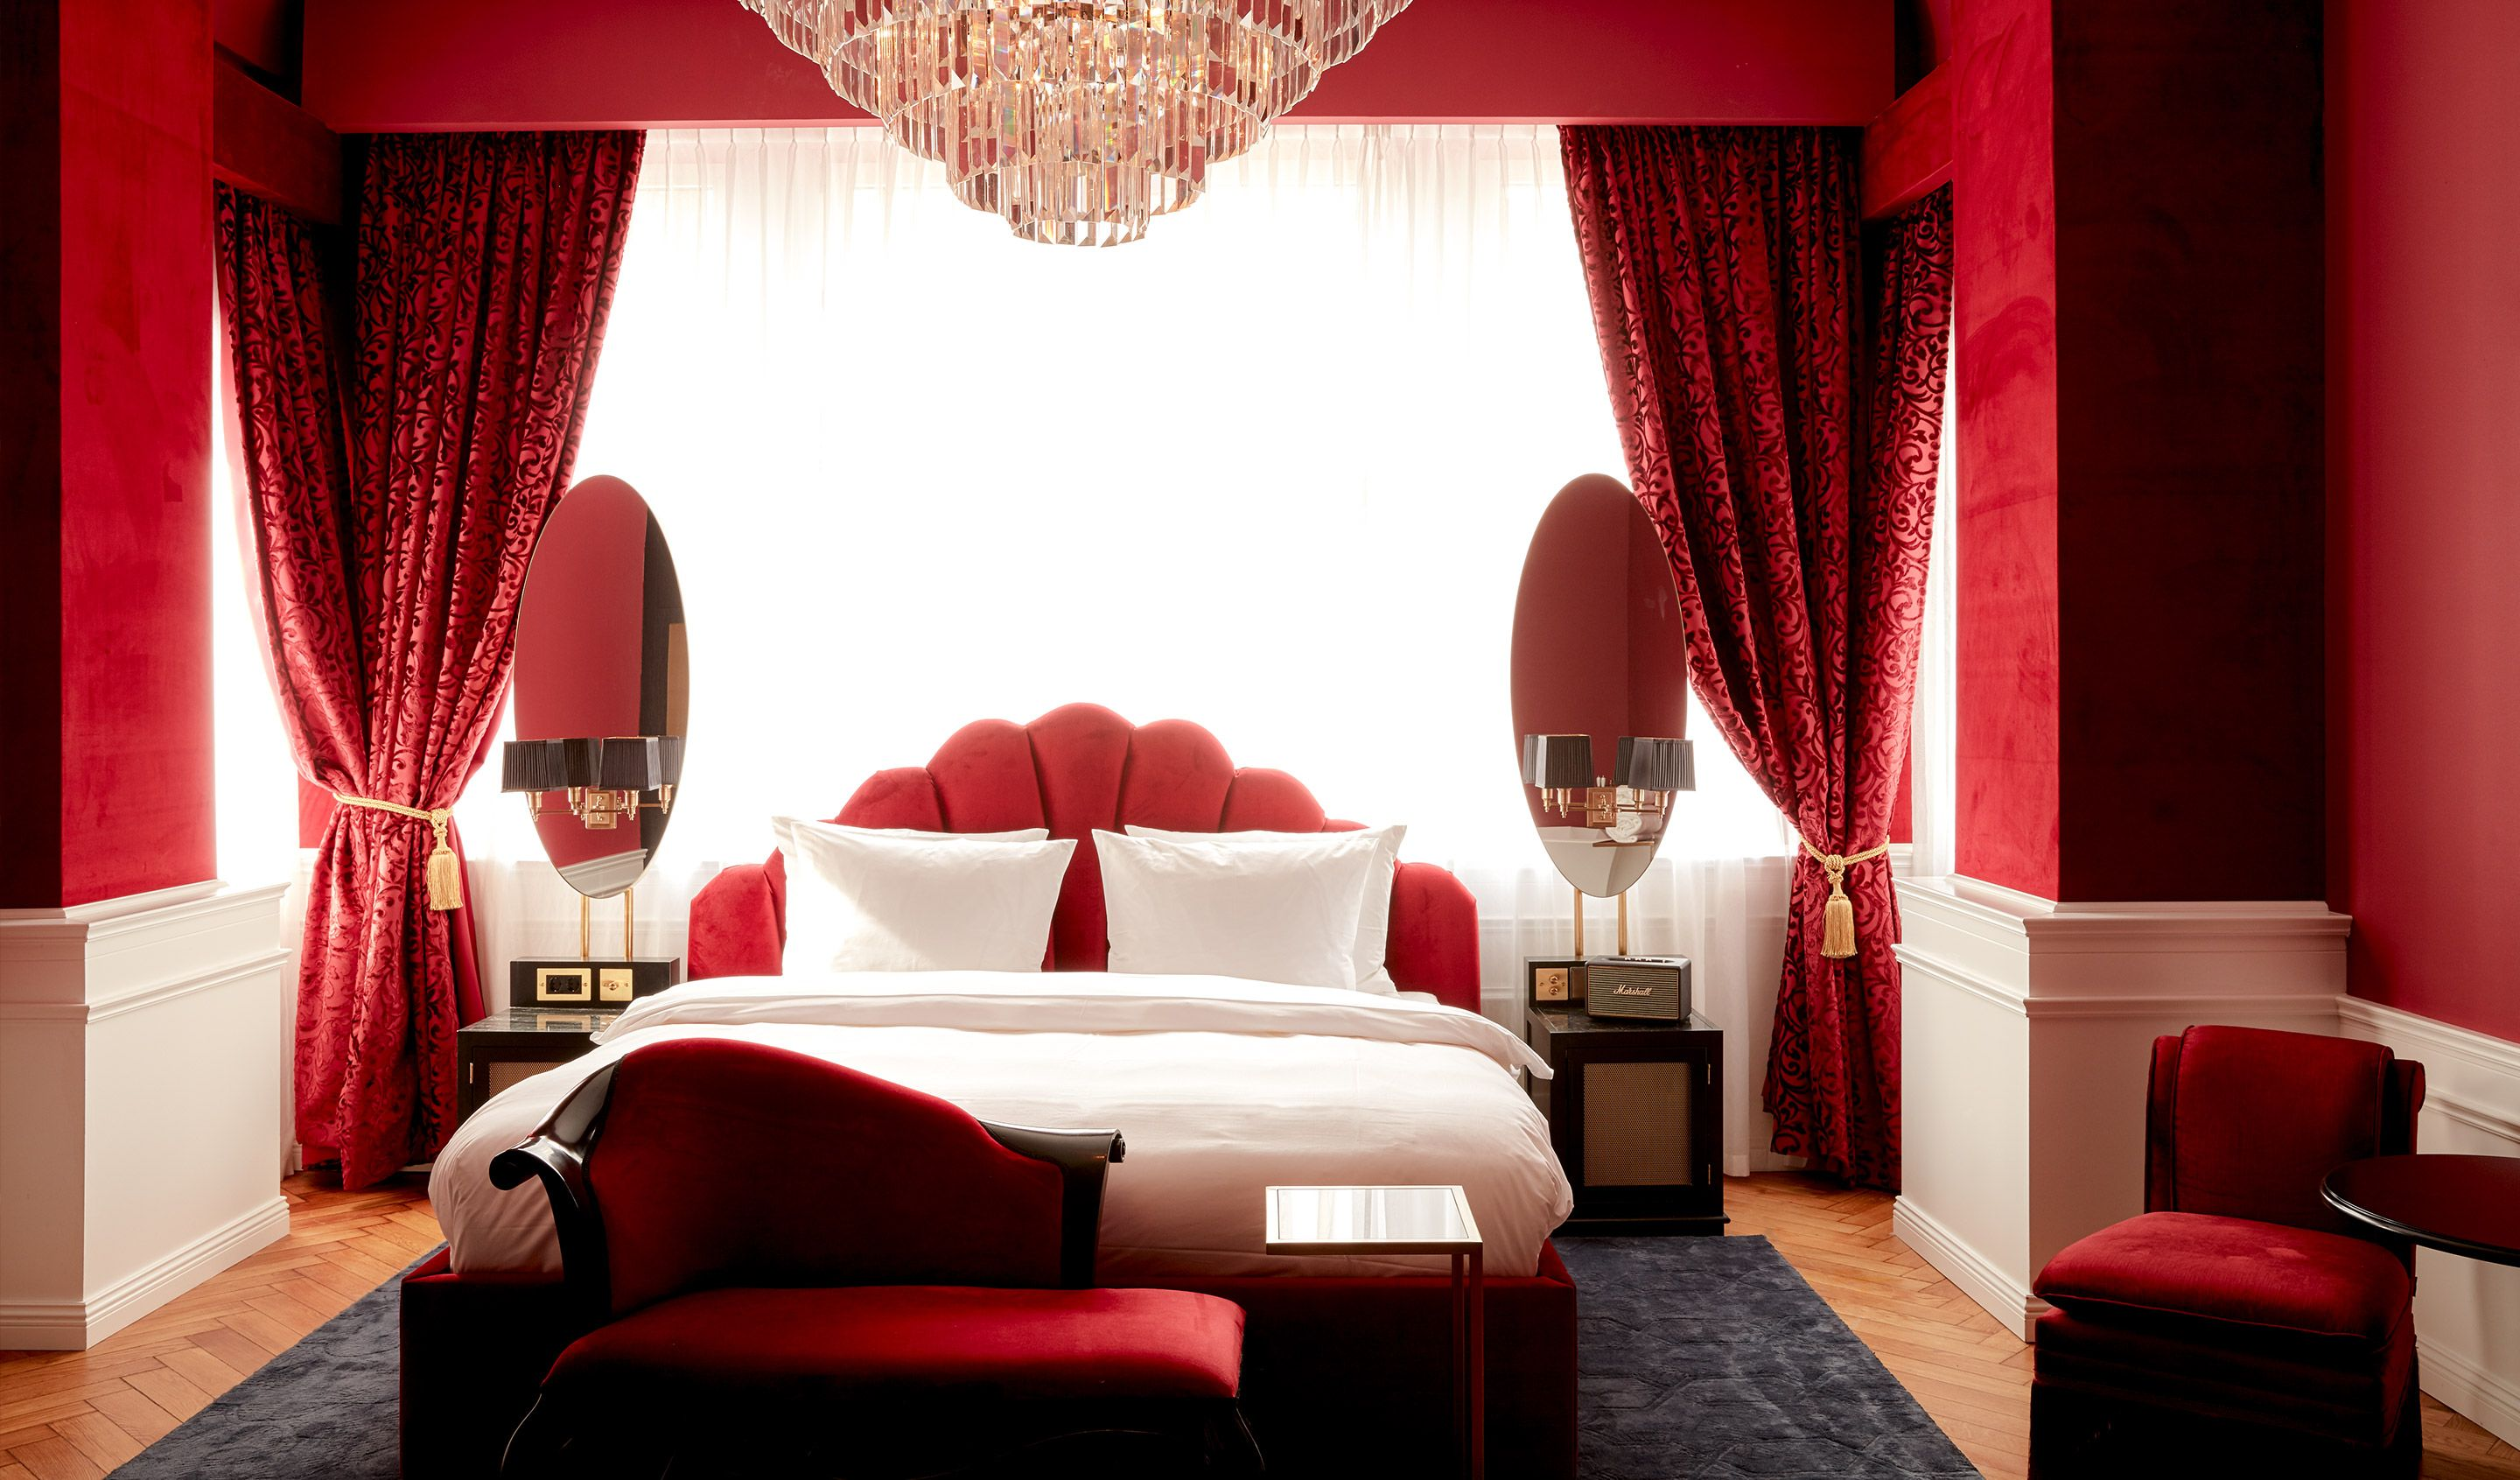 Red Burlesque Themed Bedroom Interior Provocateur Berlin With Its Prevailing Character Of Mystery And Sensuality The Berlin Hotel Bedroom Interior Hotel